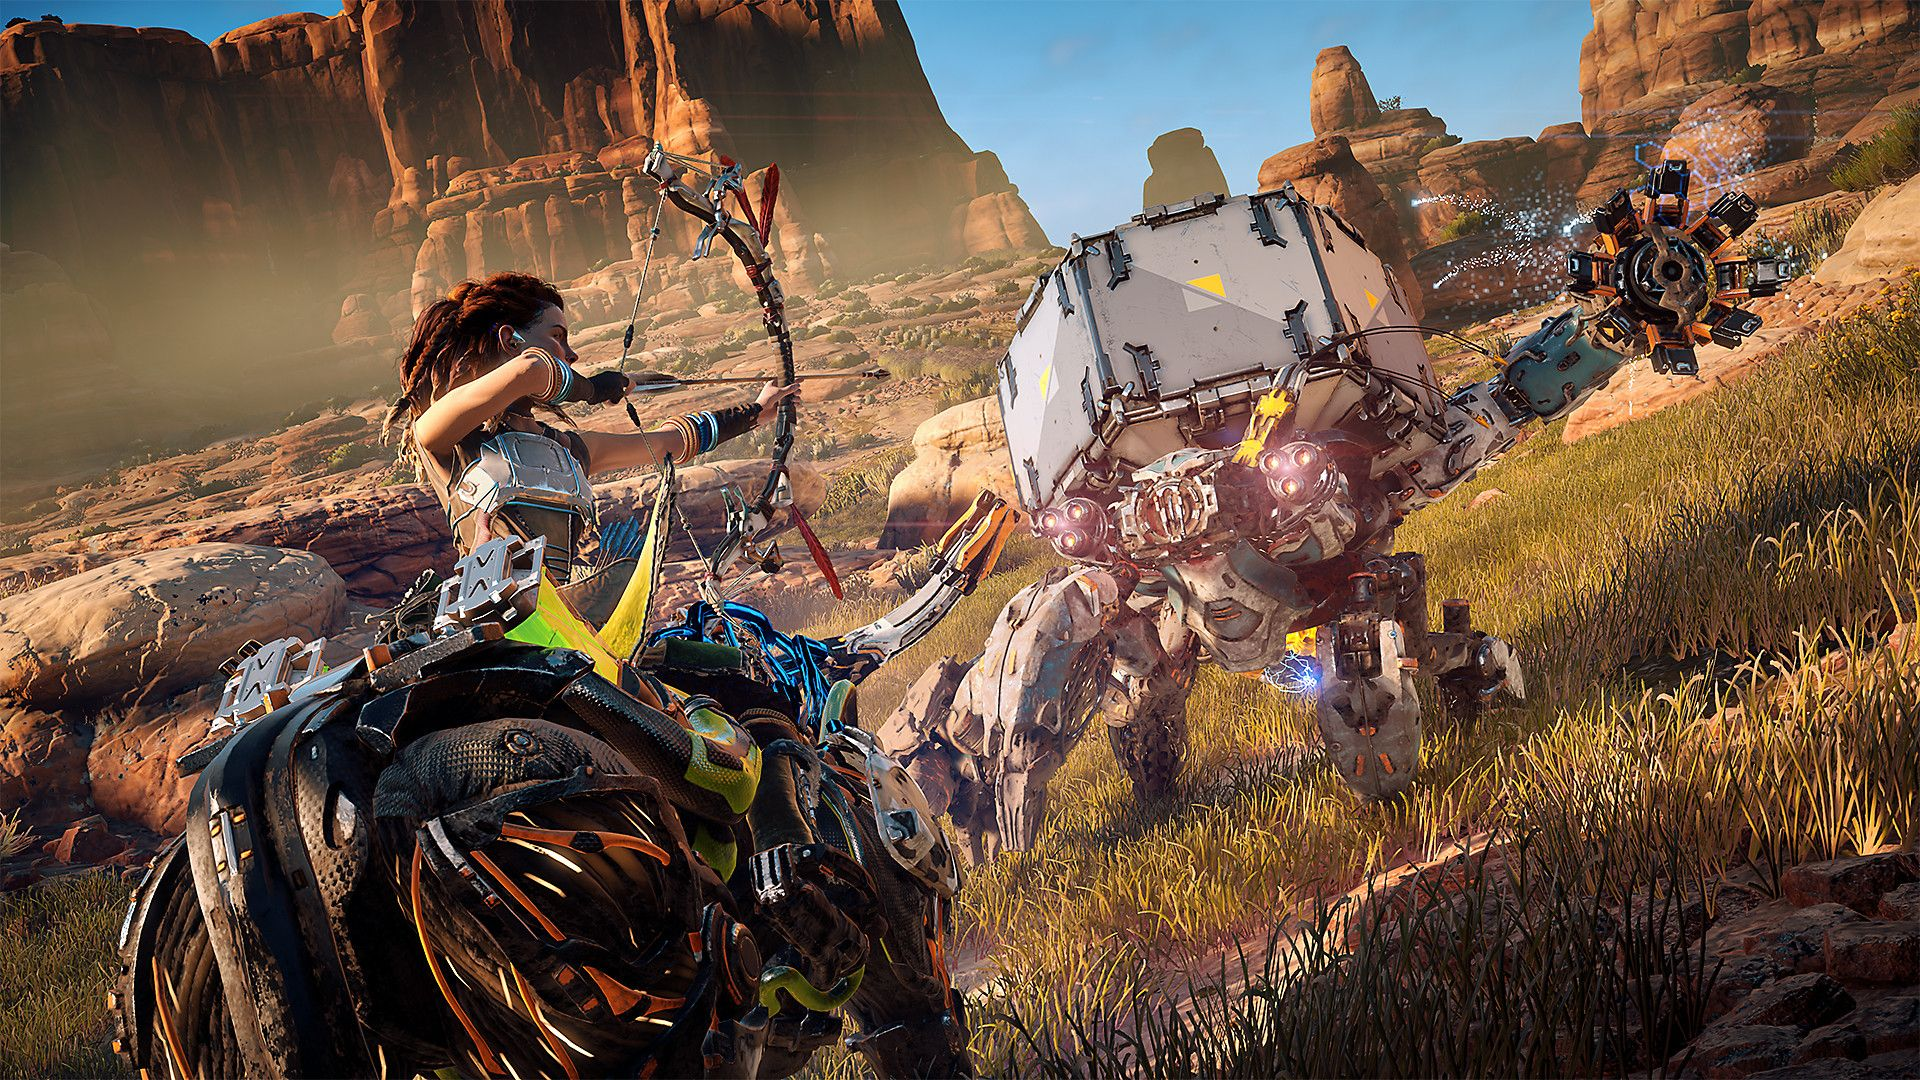 ps5-games-list-horizon-zero-dawn-playstation-5